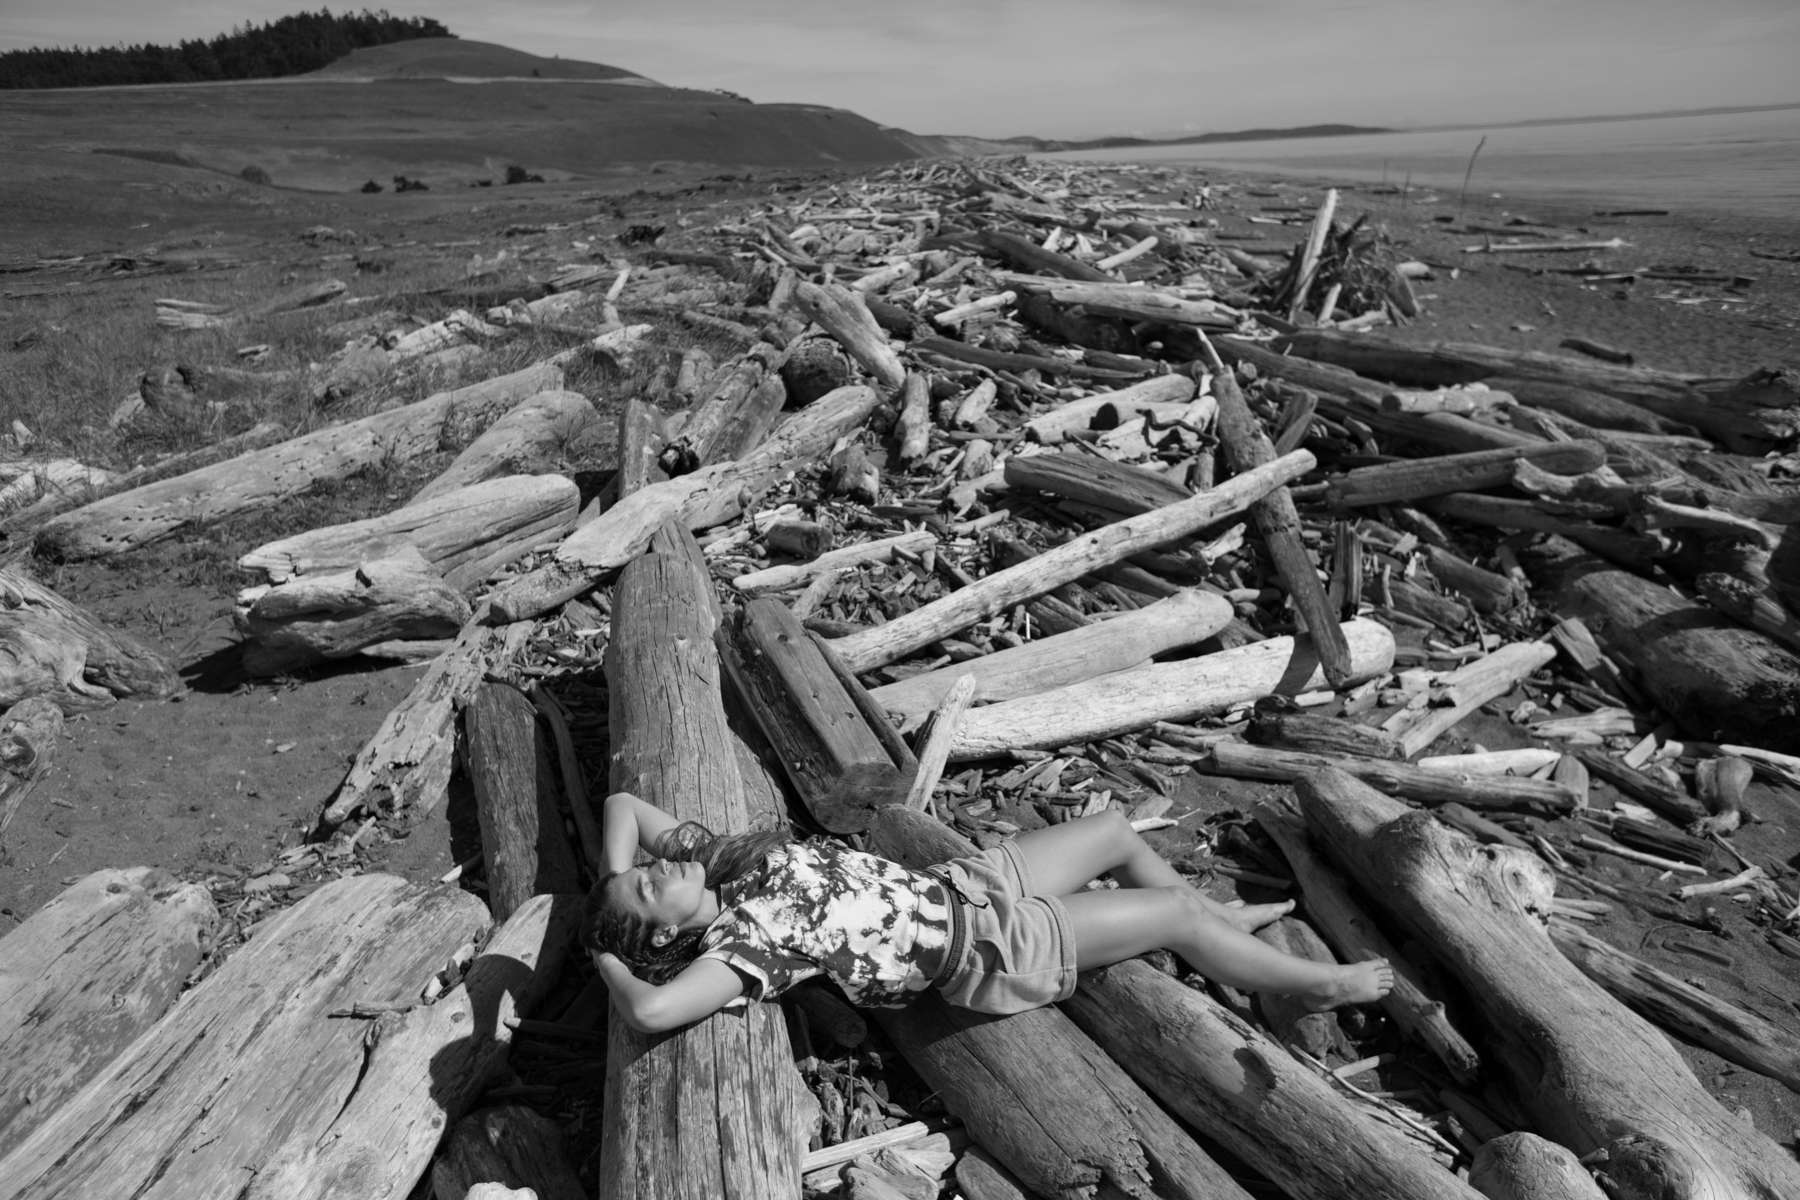 Tavia, Laying in a large pile of driftwood on a beach